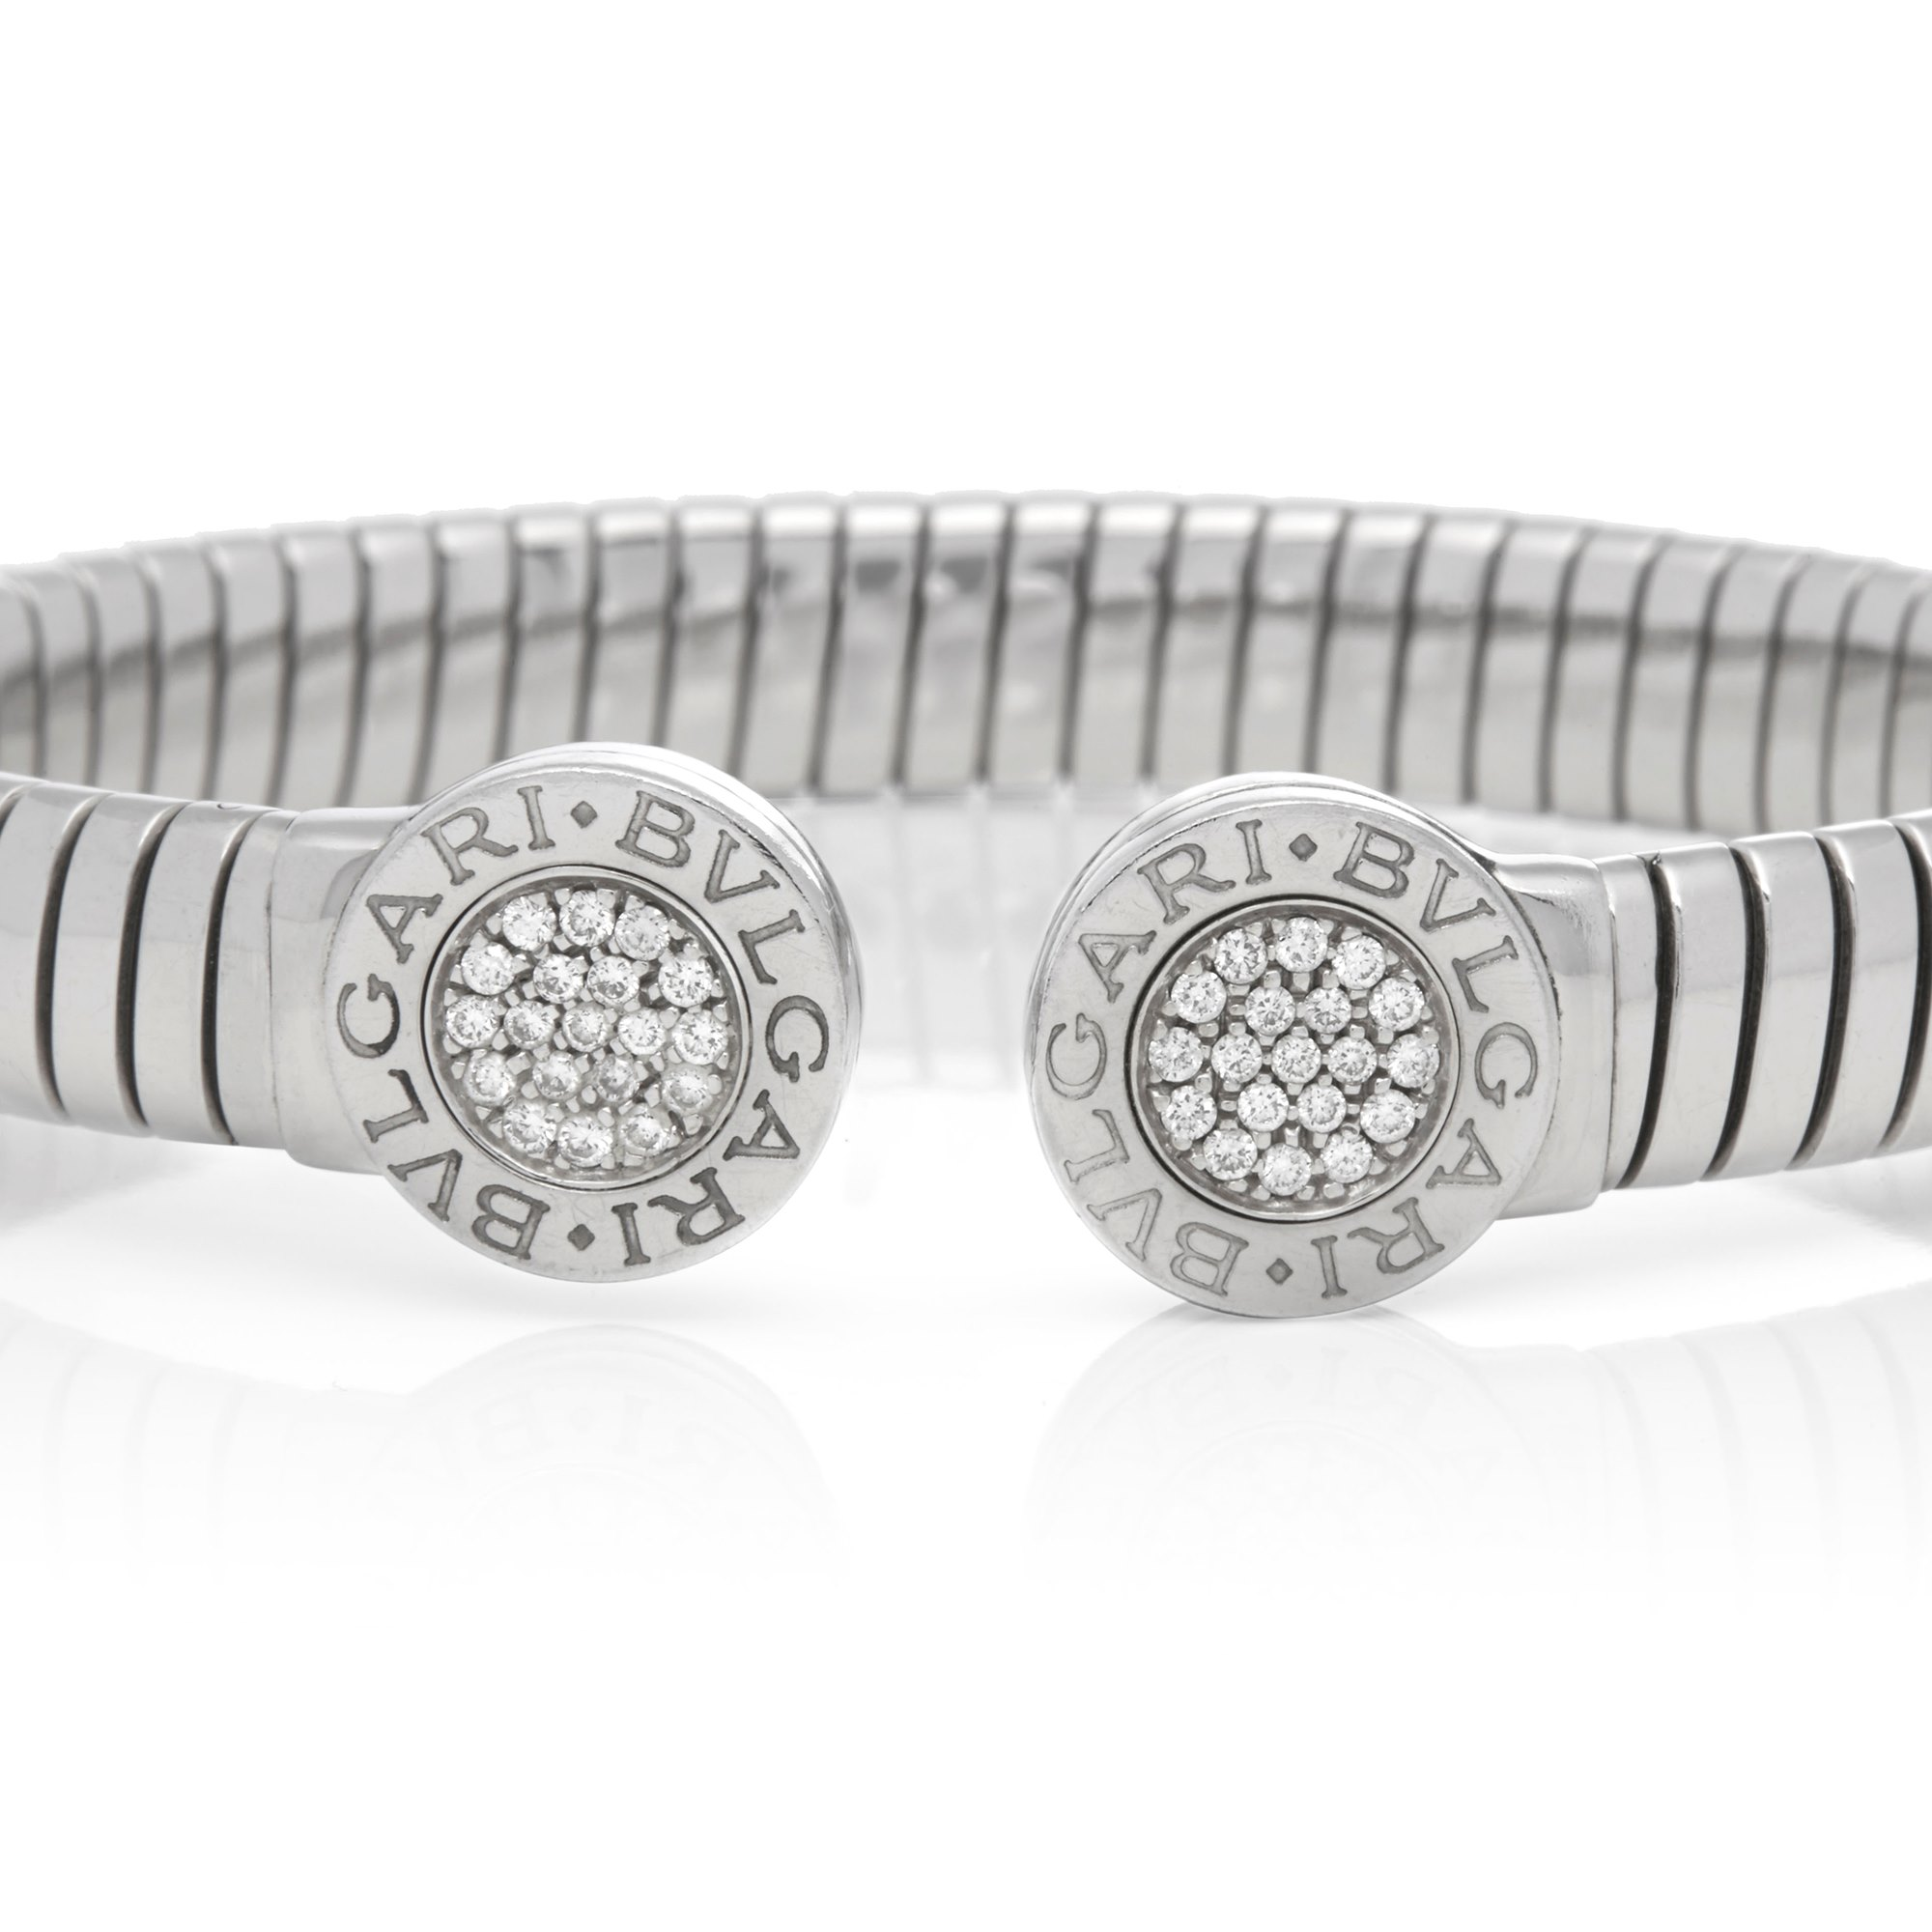 Bulgari Stainless Steel Diamond Tubogas Bracelet